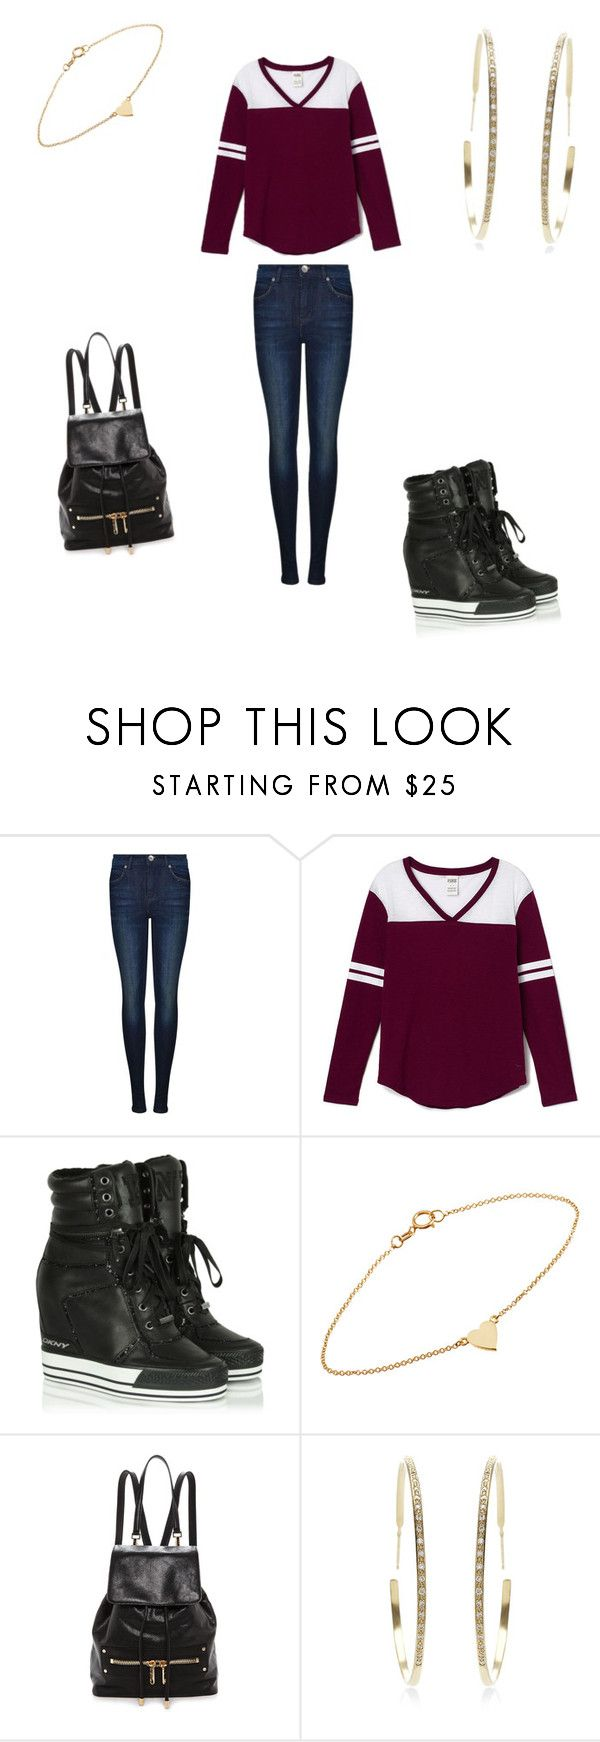 """KC UNDERCOVER"" by manad ❤ liked on Polyvore featuring Dr. Denim, Victoria's Secret PINK, DKNY, Jennifer Meyer Jewelry, Milly, Lizzie Mandler, women's clothing, women, female and woman"